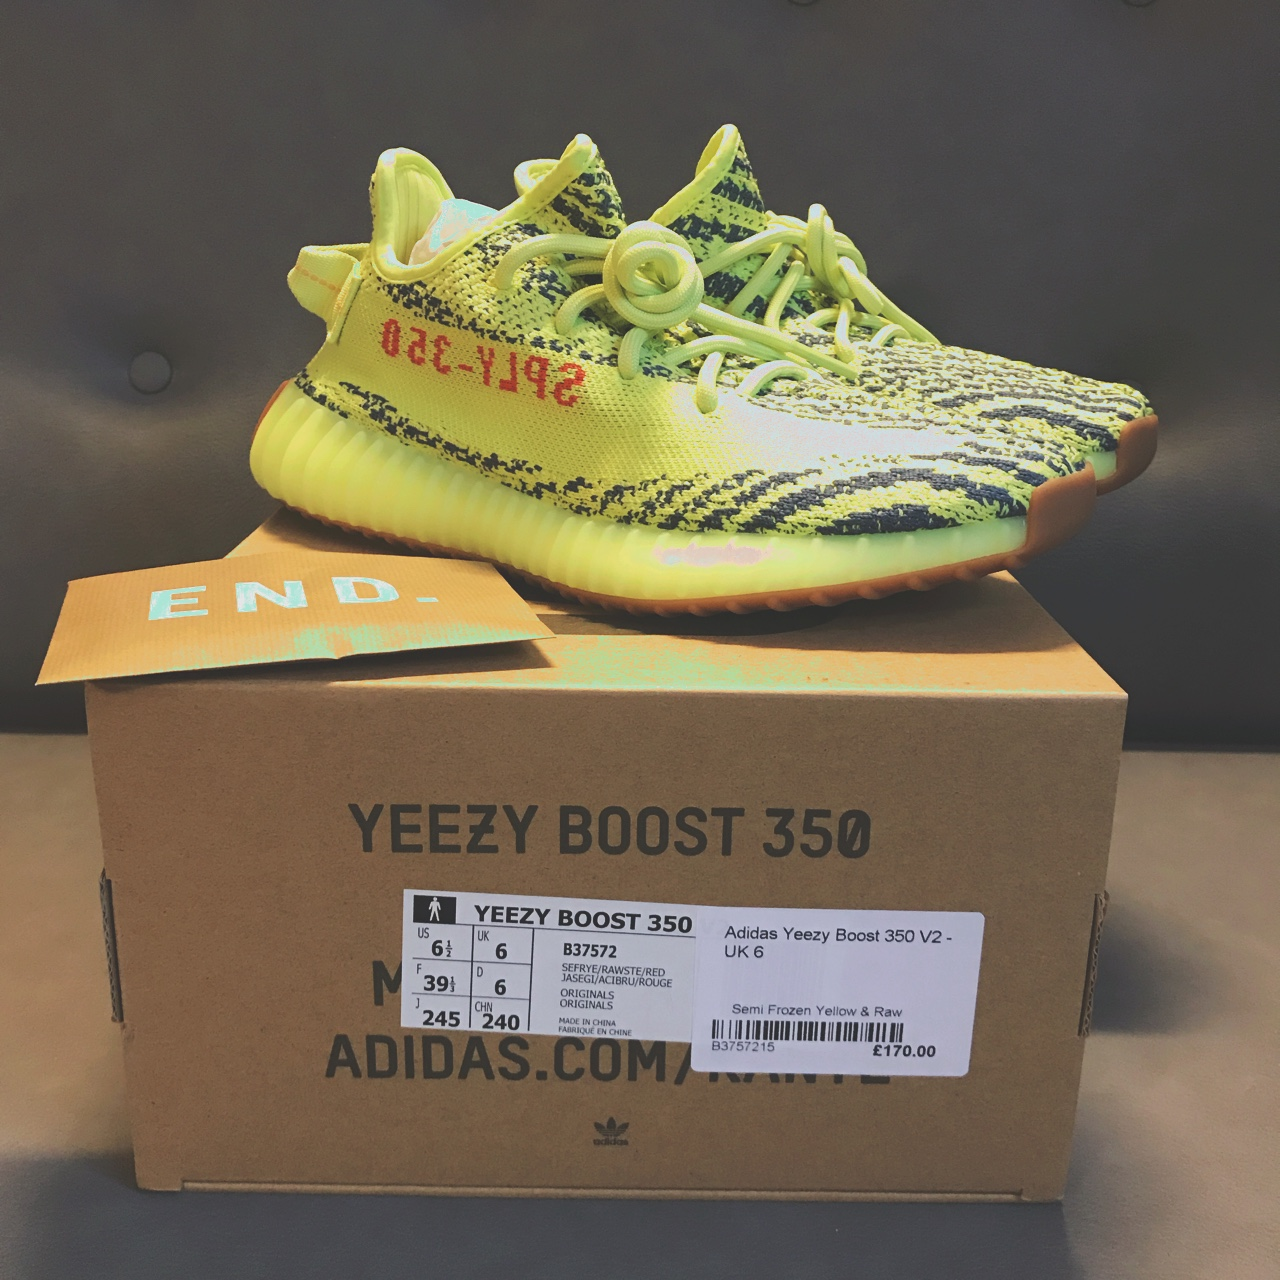 Yeezy Boost 350 V2 Semi Frozen Yellow and Raw Size